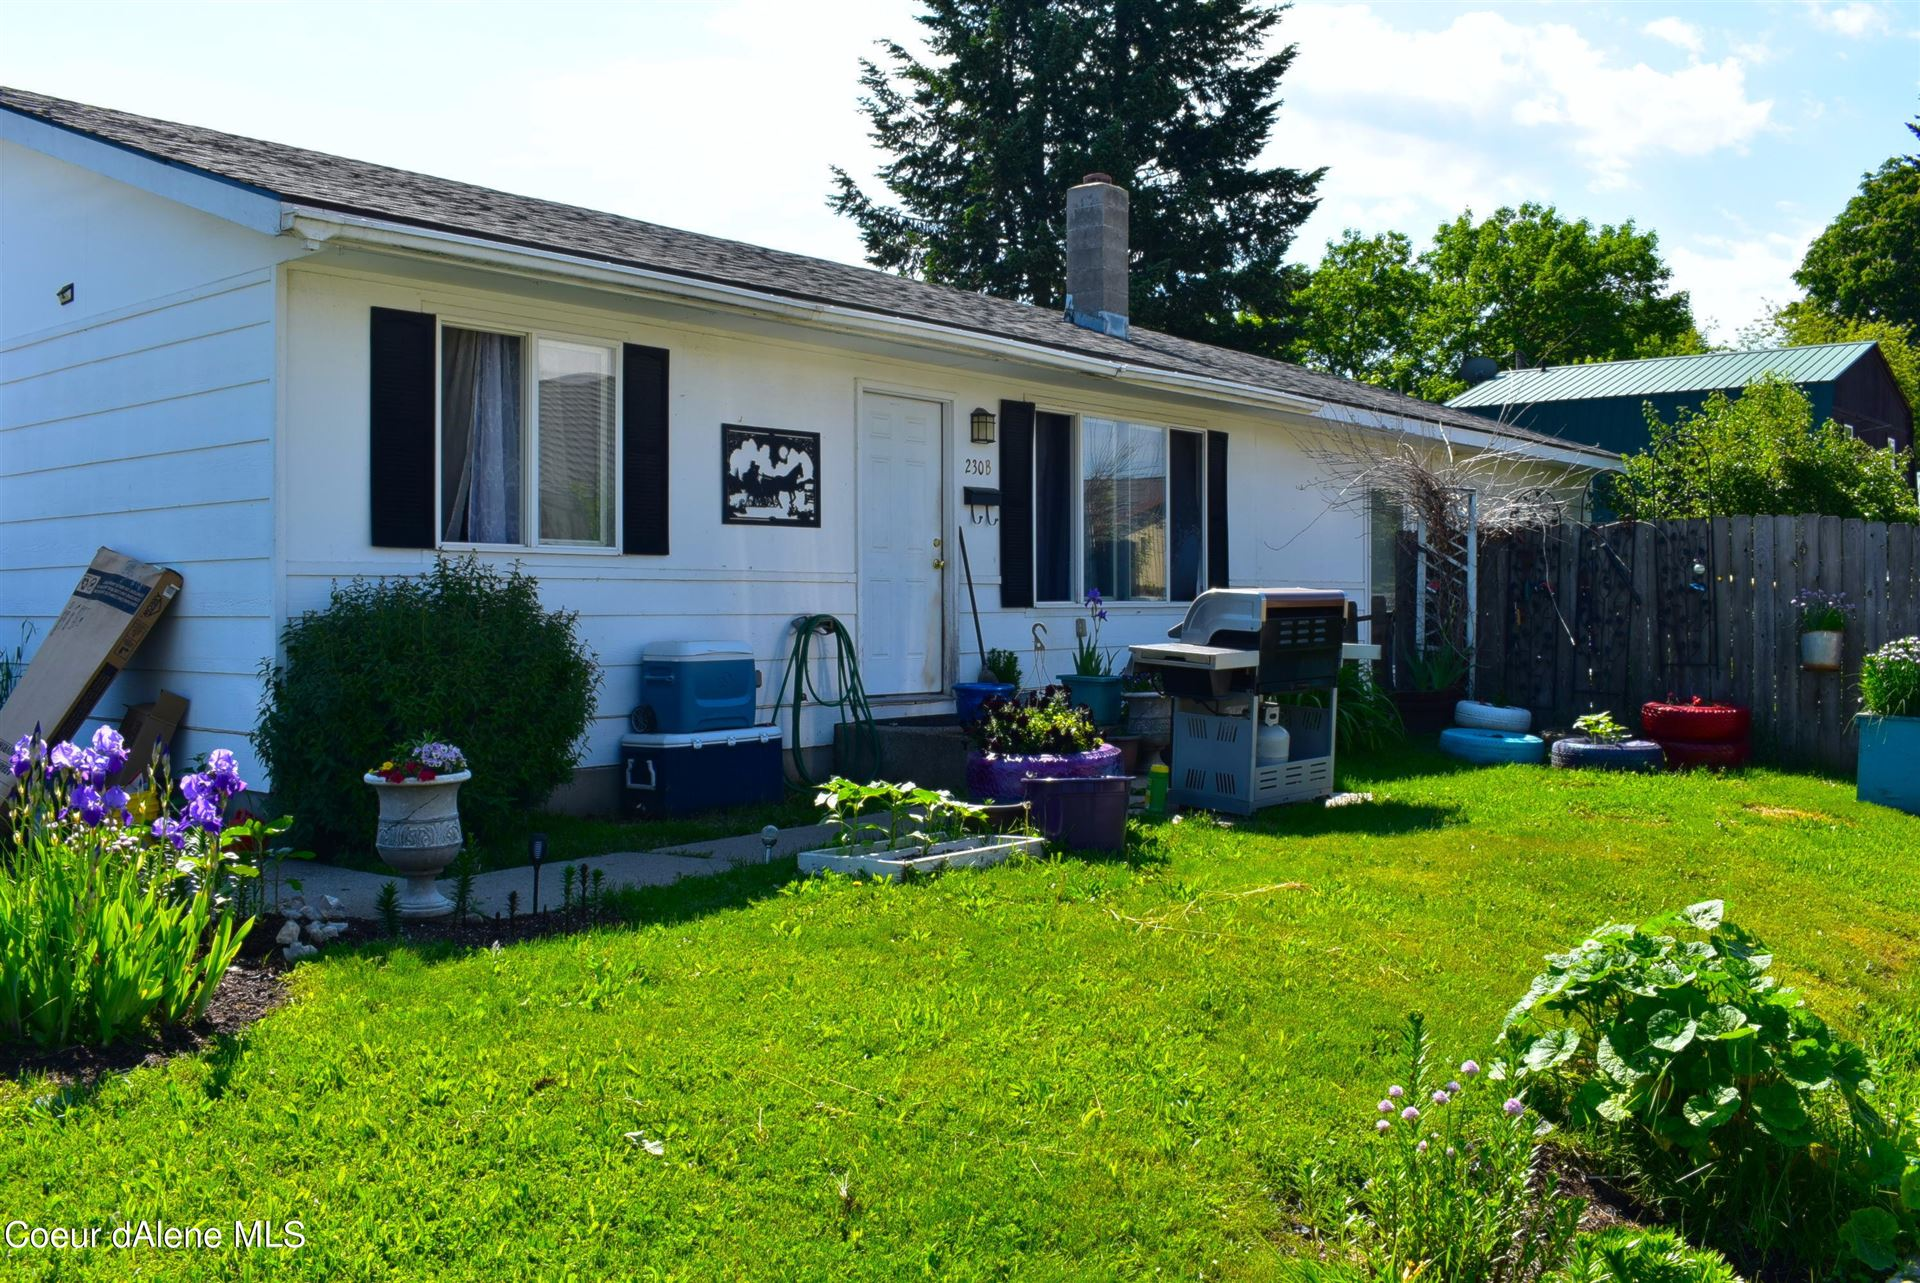 Photo of 230 N Division, Sandpoint, ID 83864 (MLS # 21-5313)